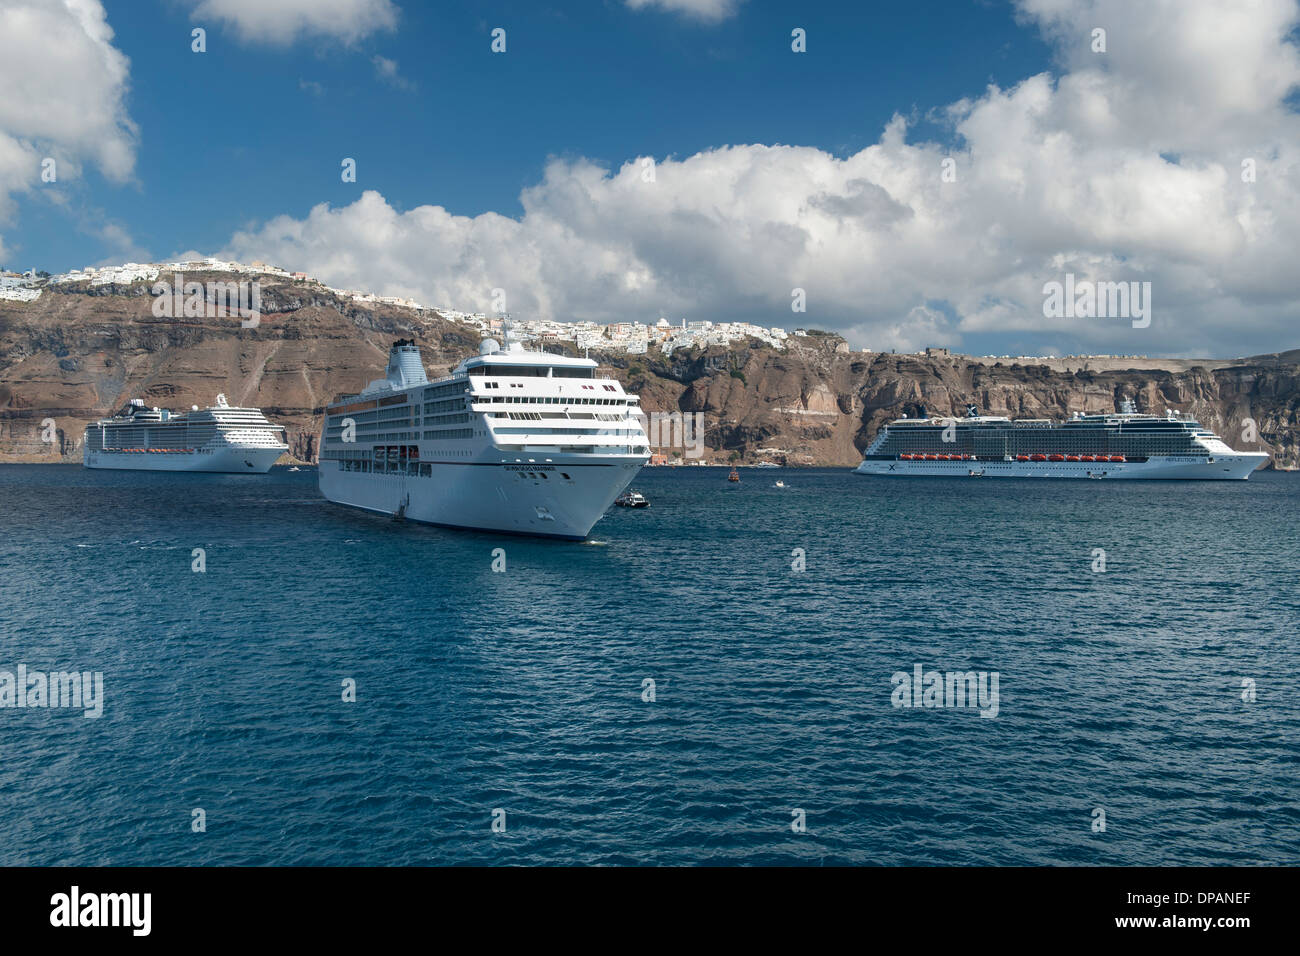 View of the village of Fira and cruise ships anchored off the coast of the Greek island of Santorini. - Stock Image